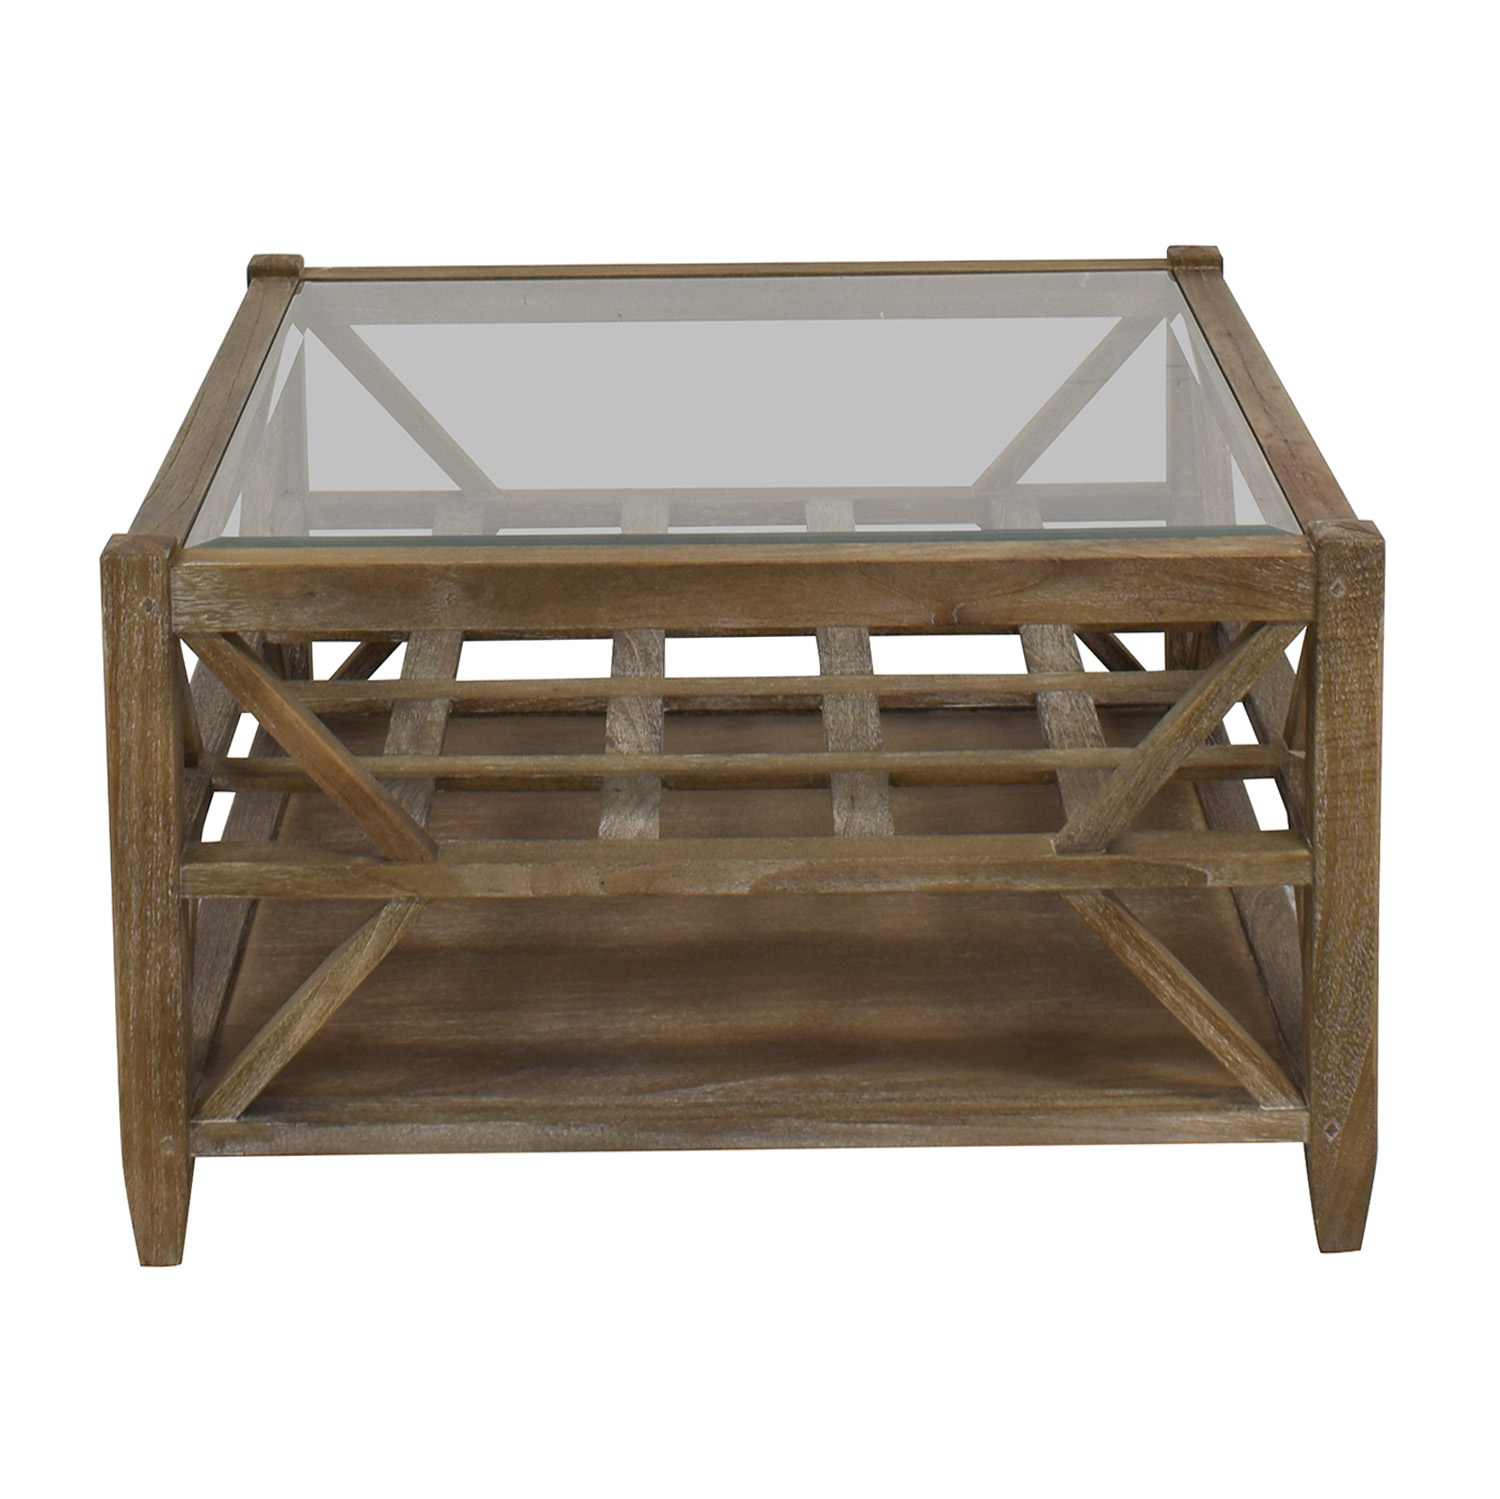 Arhaus Arhaus Glass Top Coffee Table for sale